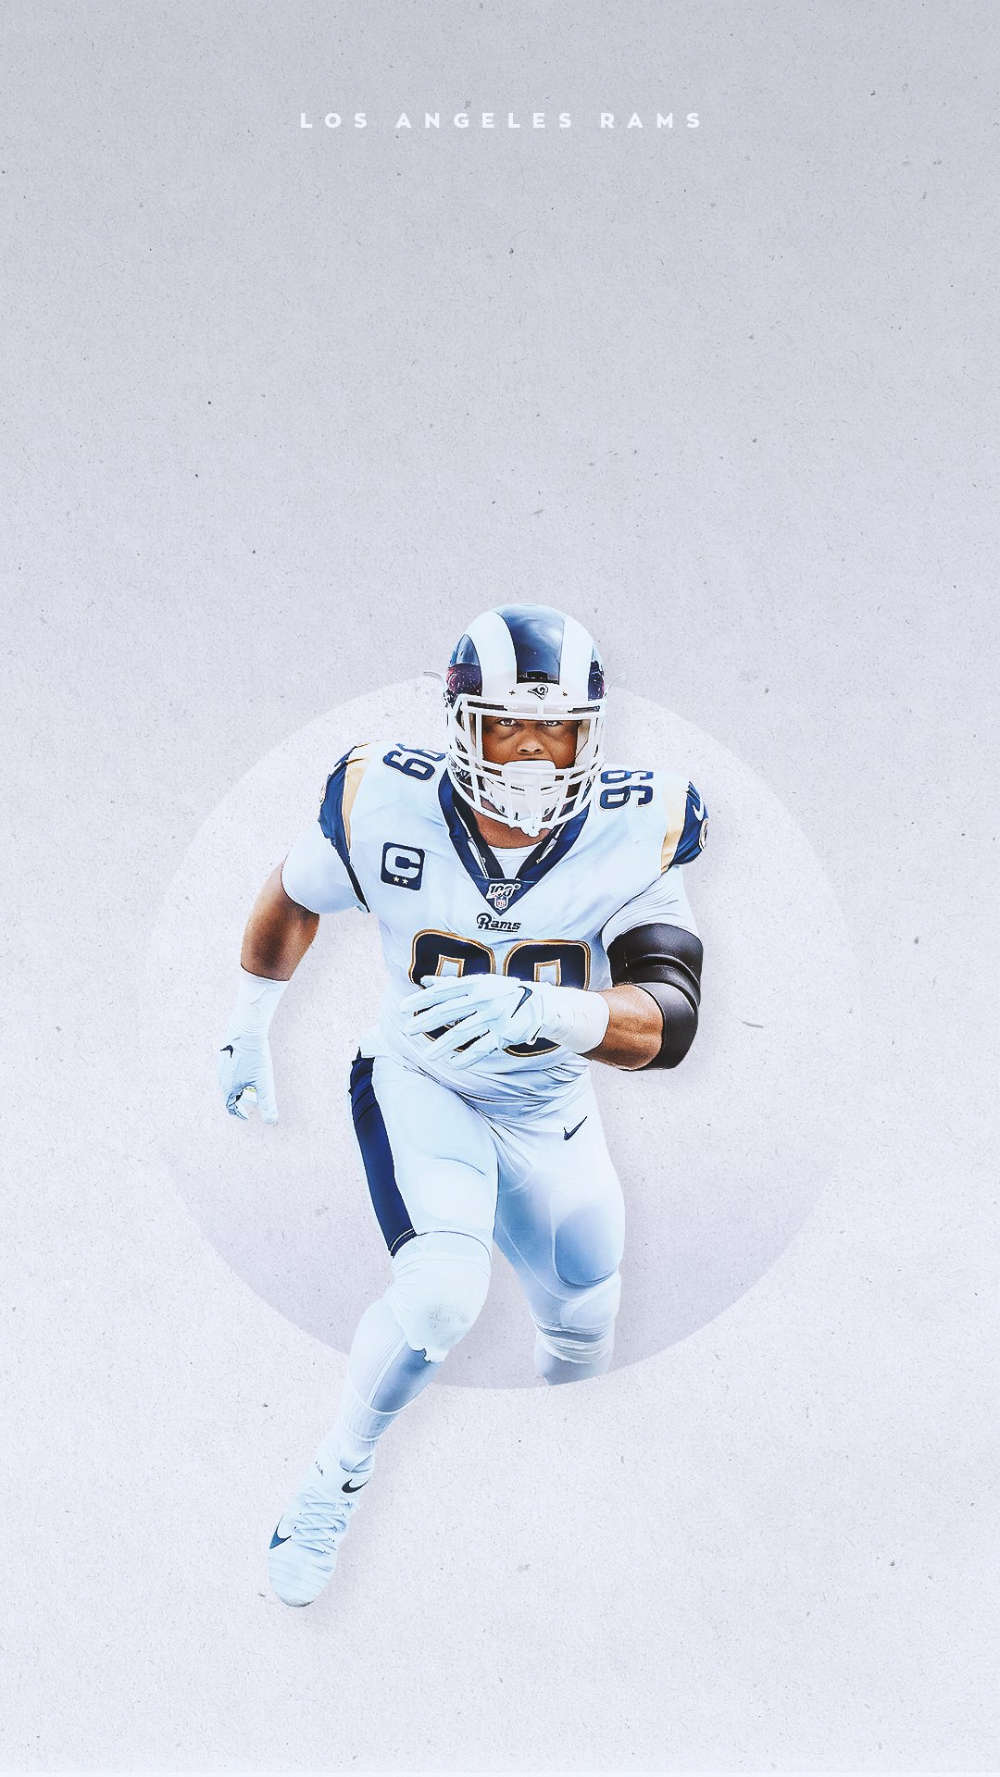 Los Angeles Rams On Twitter Sports Graphic Design Nfl Football Art Sports Design